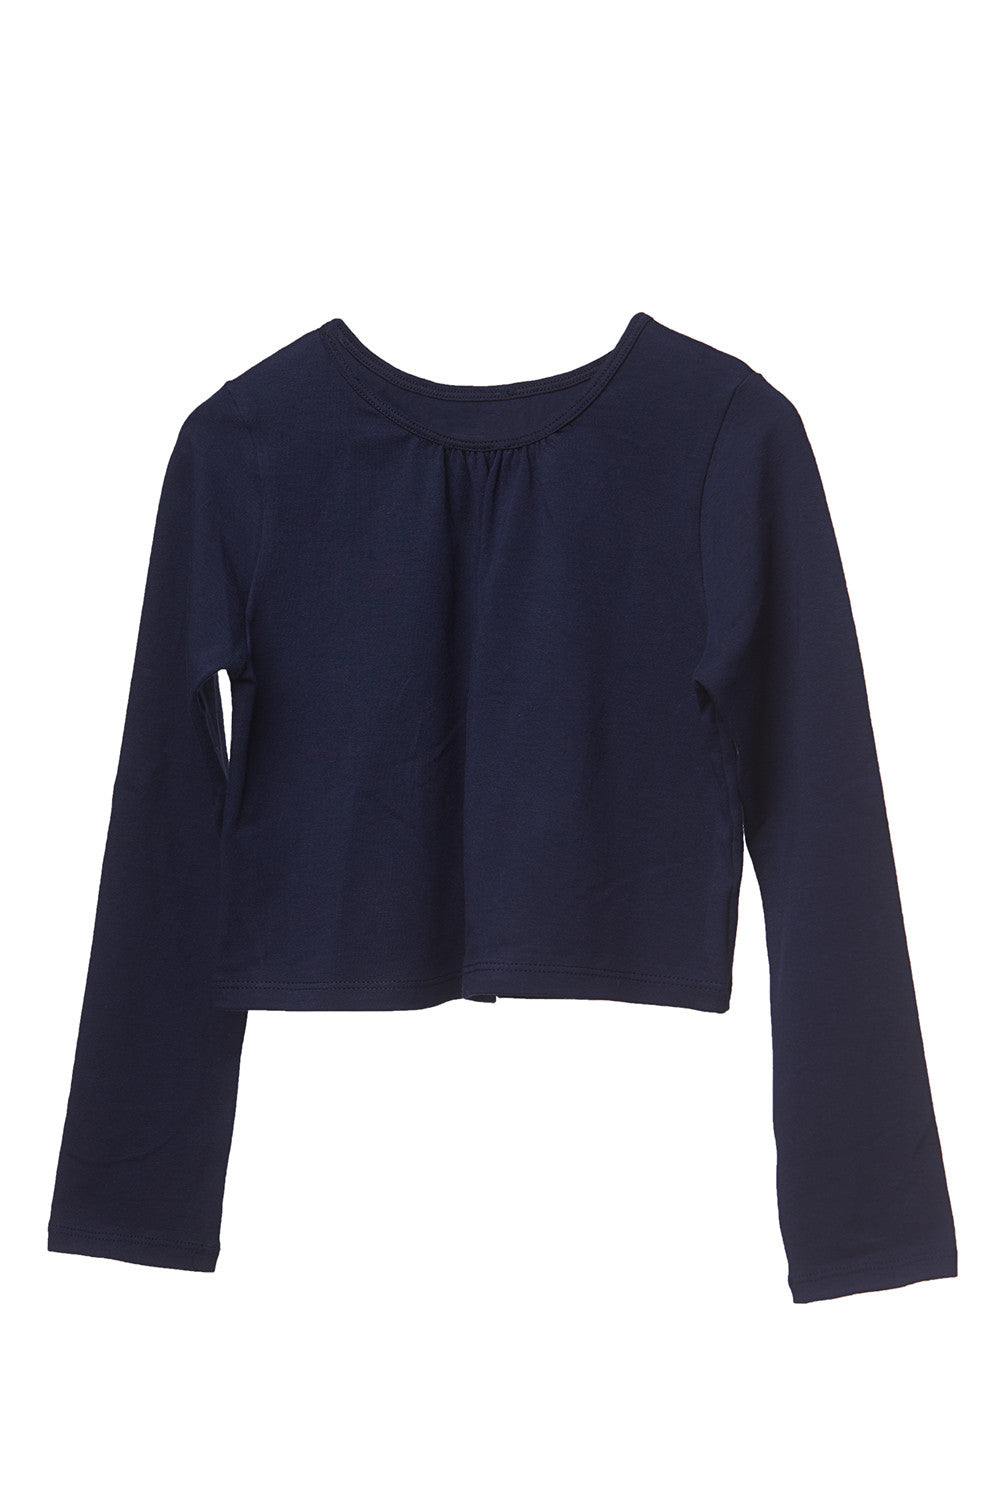 Basic Top - Navy